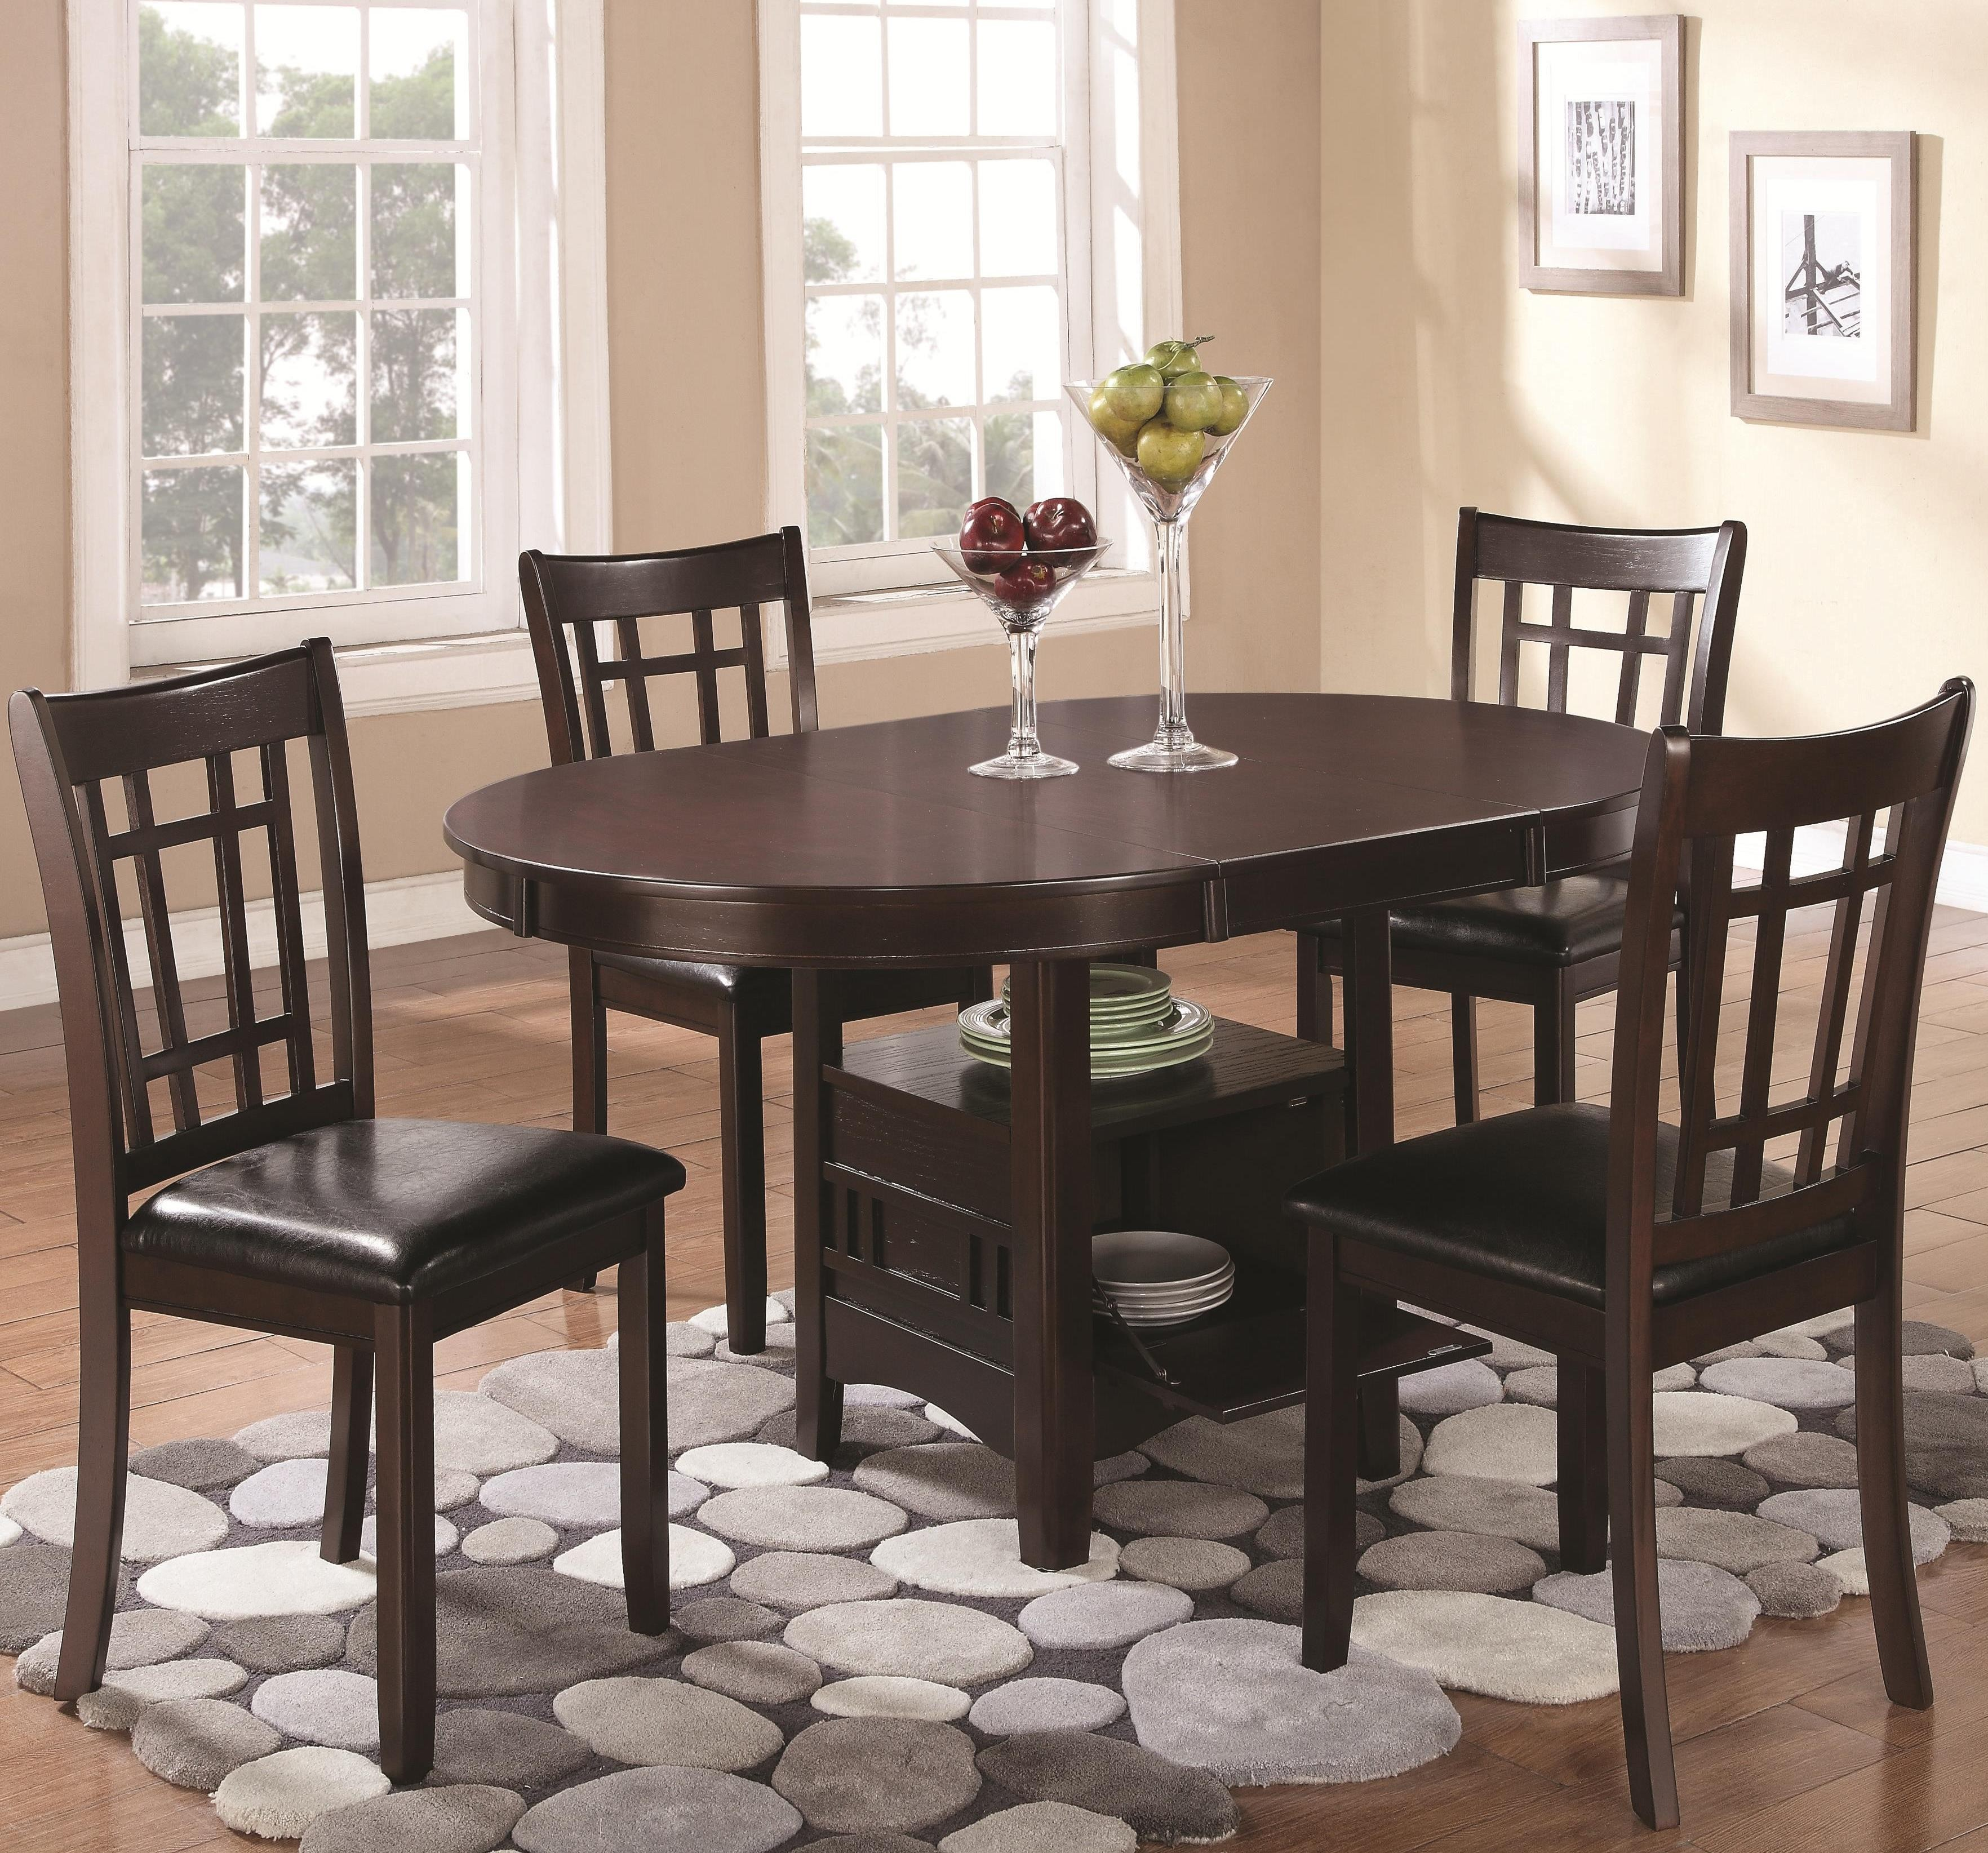 Linwood Extendable Dining Room Set From Coaster (102671